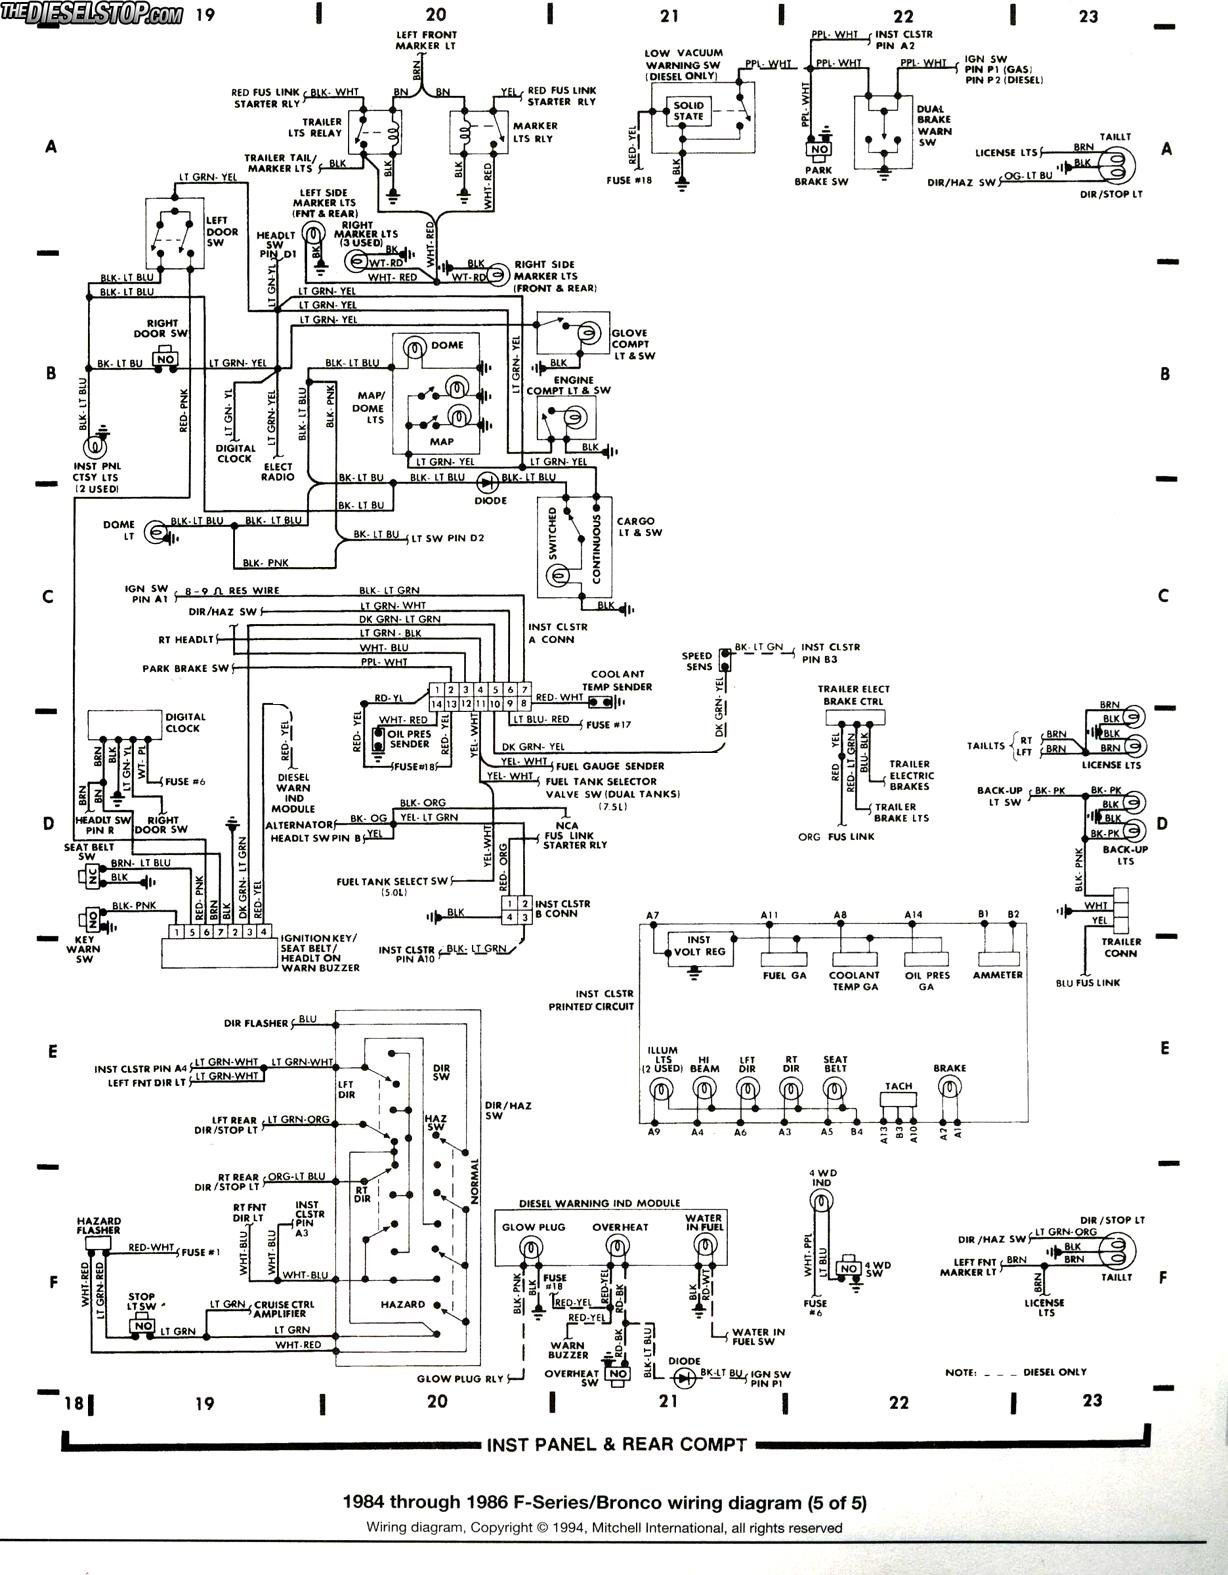 1995 Ford F250 Starter Solenoid Wiring Diagram